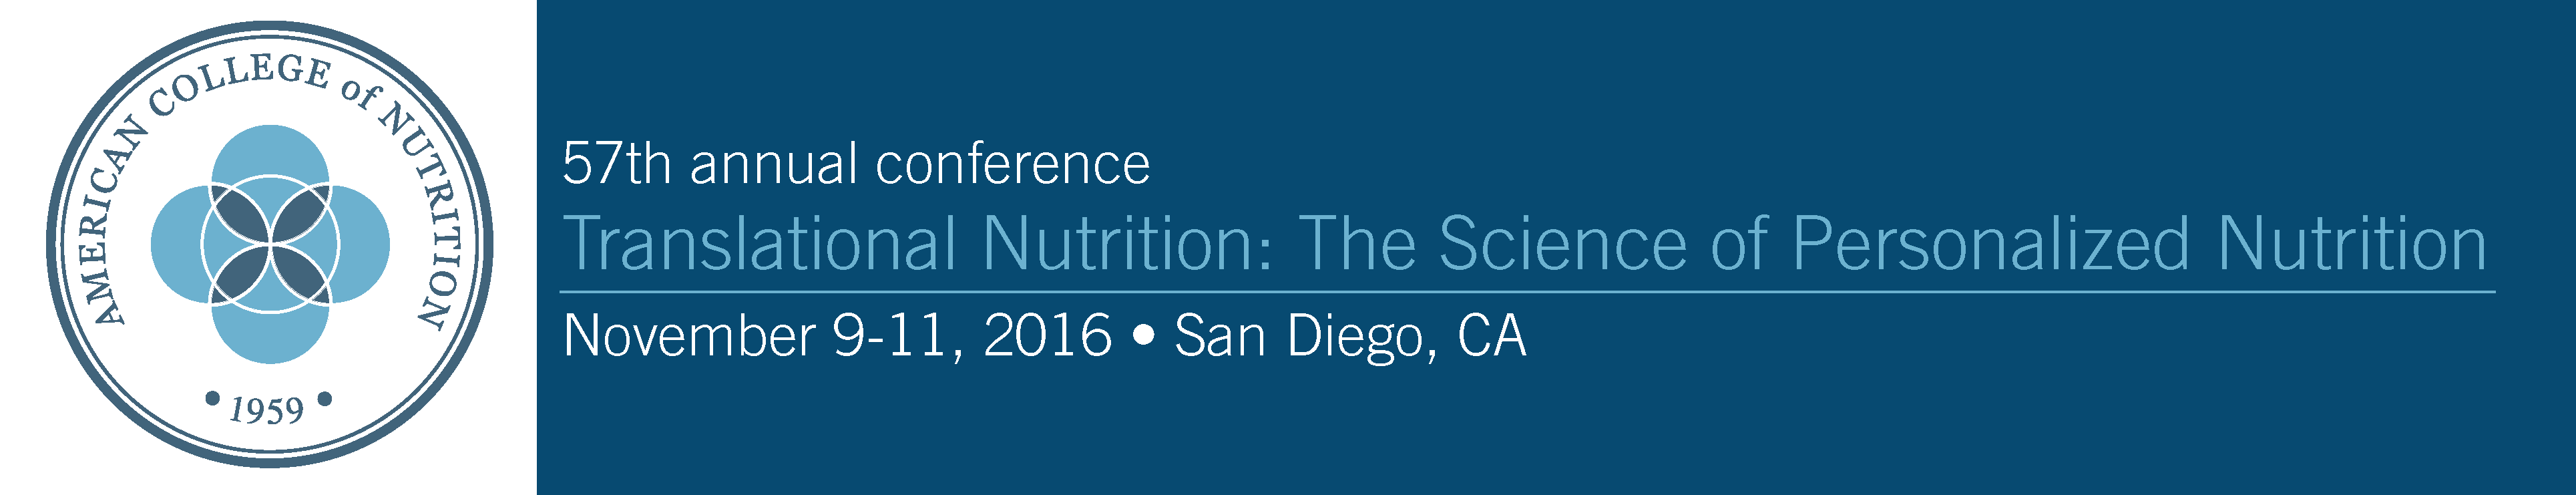 American College of Nutrition's 57th Annual Conference Translational Nutrition: The Science of Personalized Nutrition